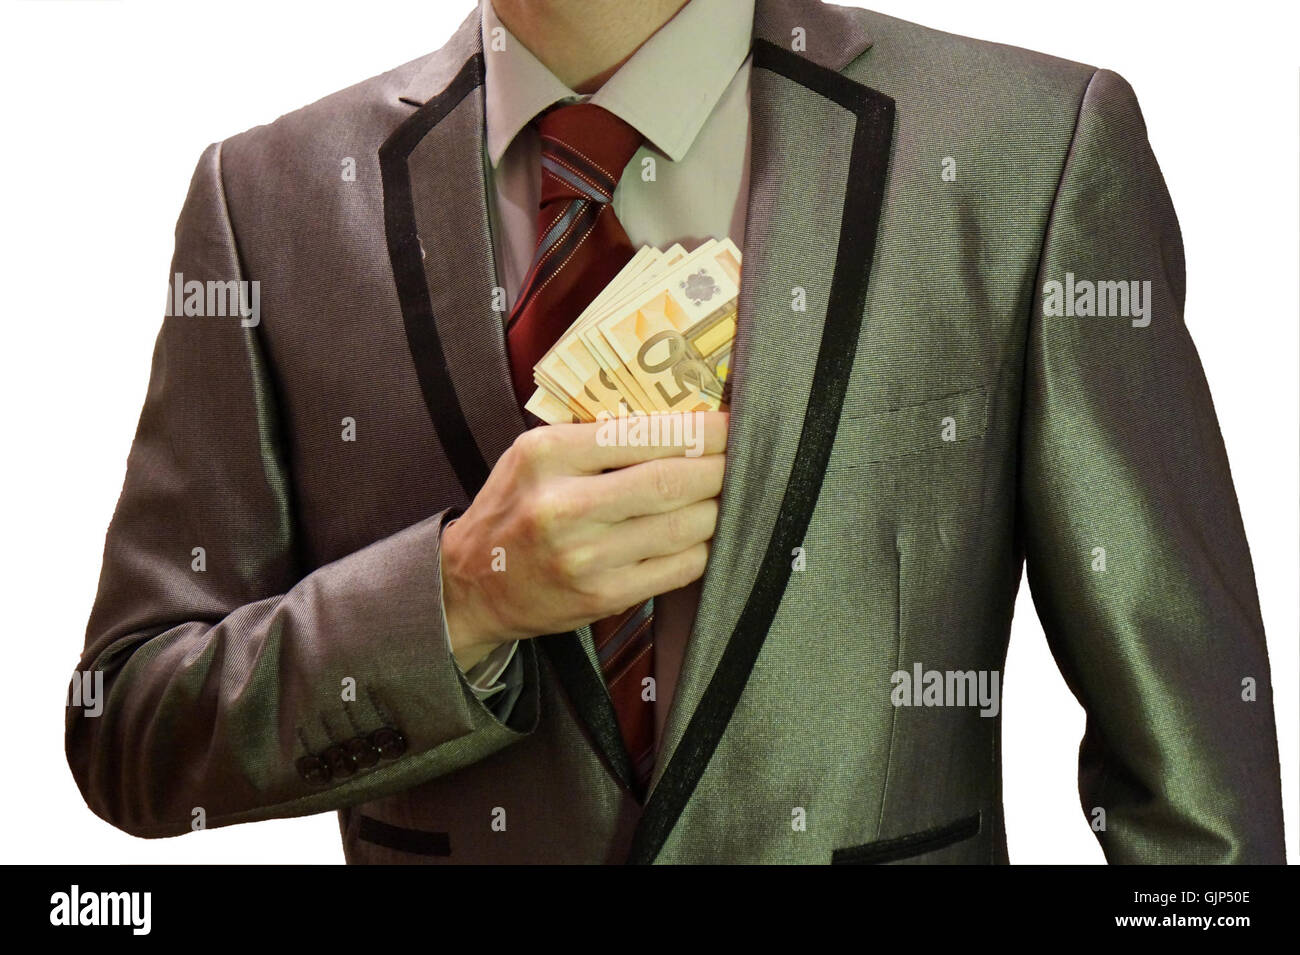 1   corruption   man in suit   white background   euro banknotes hidden into left jacket pocket   royalty free, - Stock Image